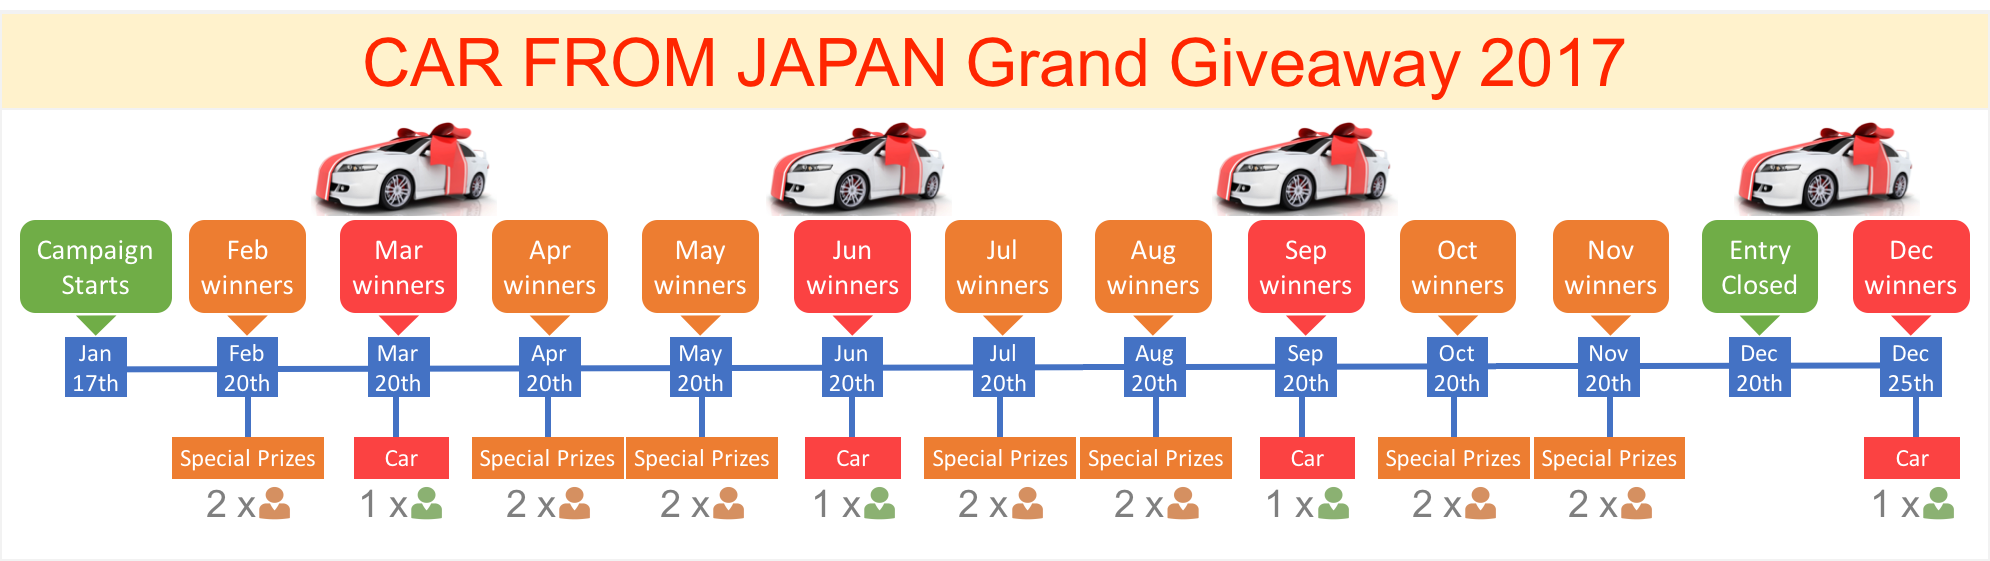 Grand Car Giveaway 2017